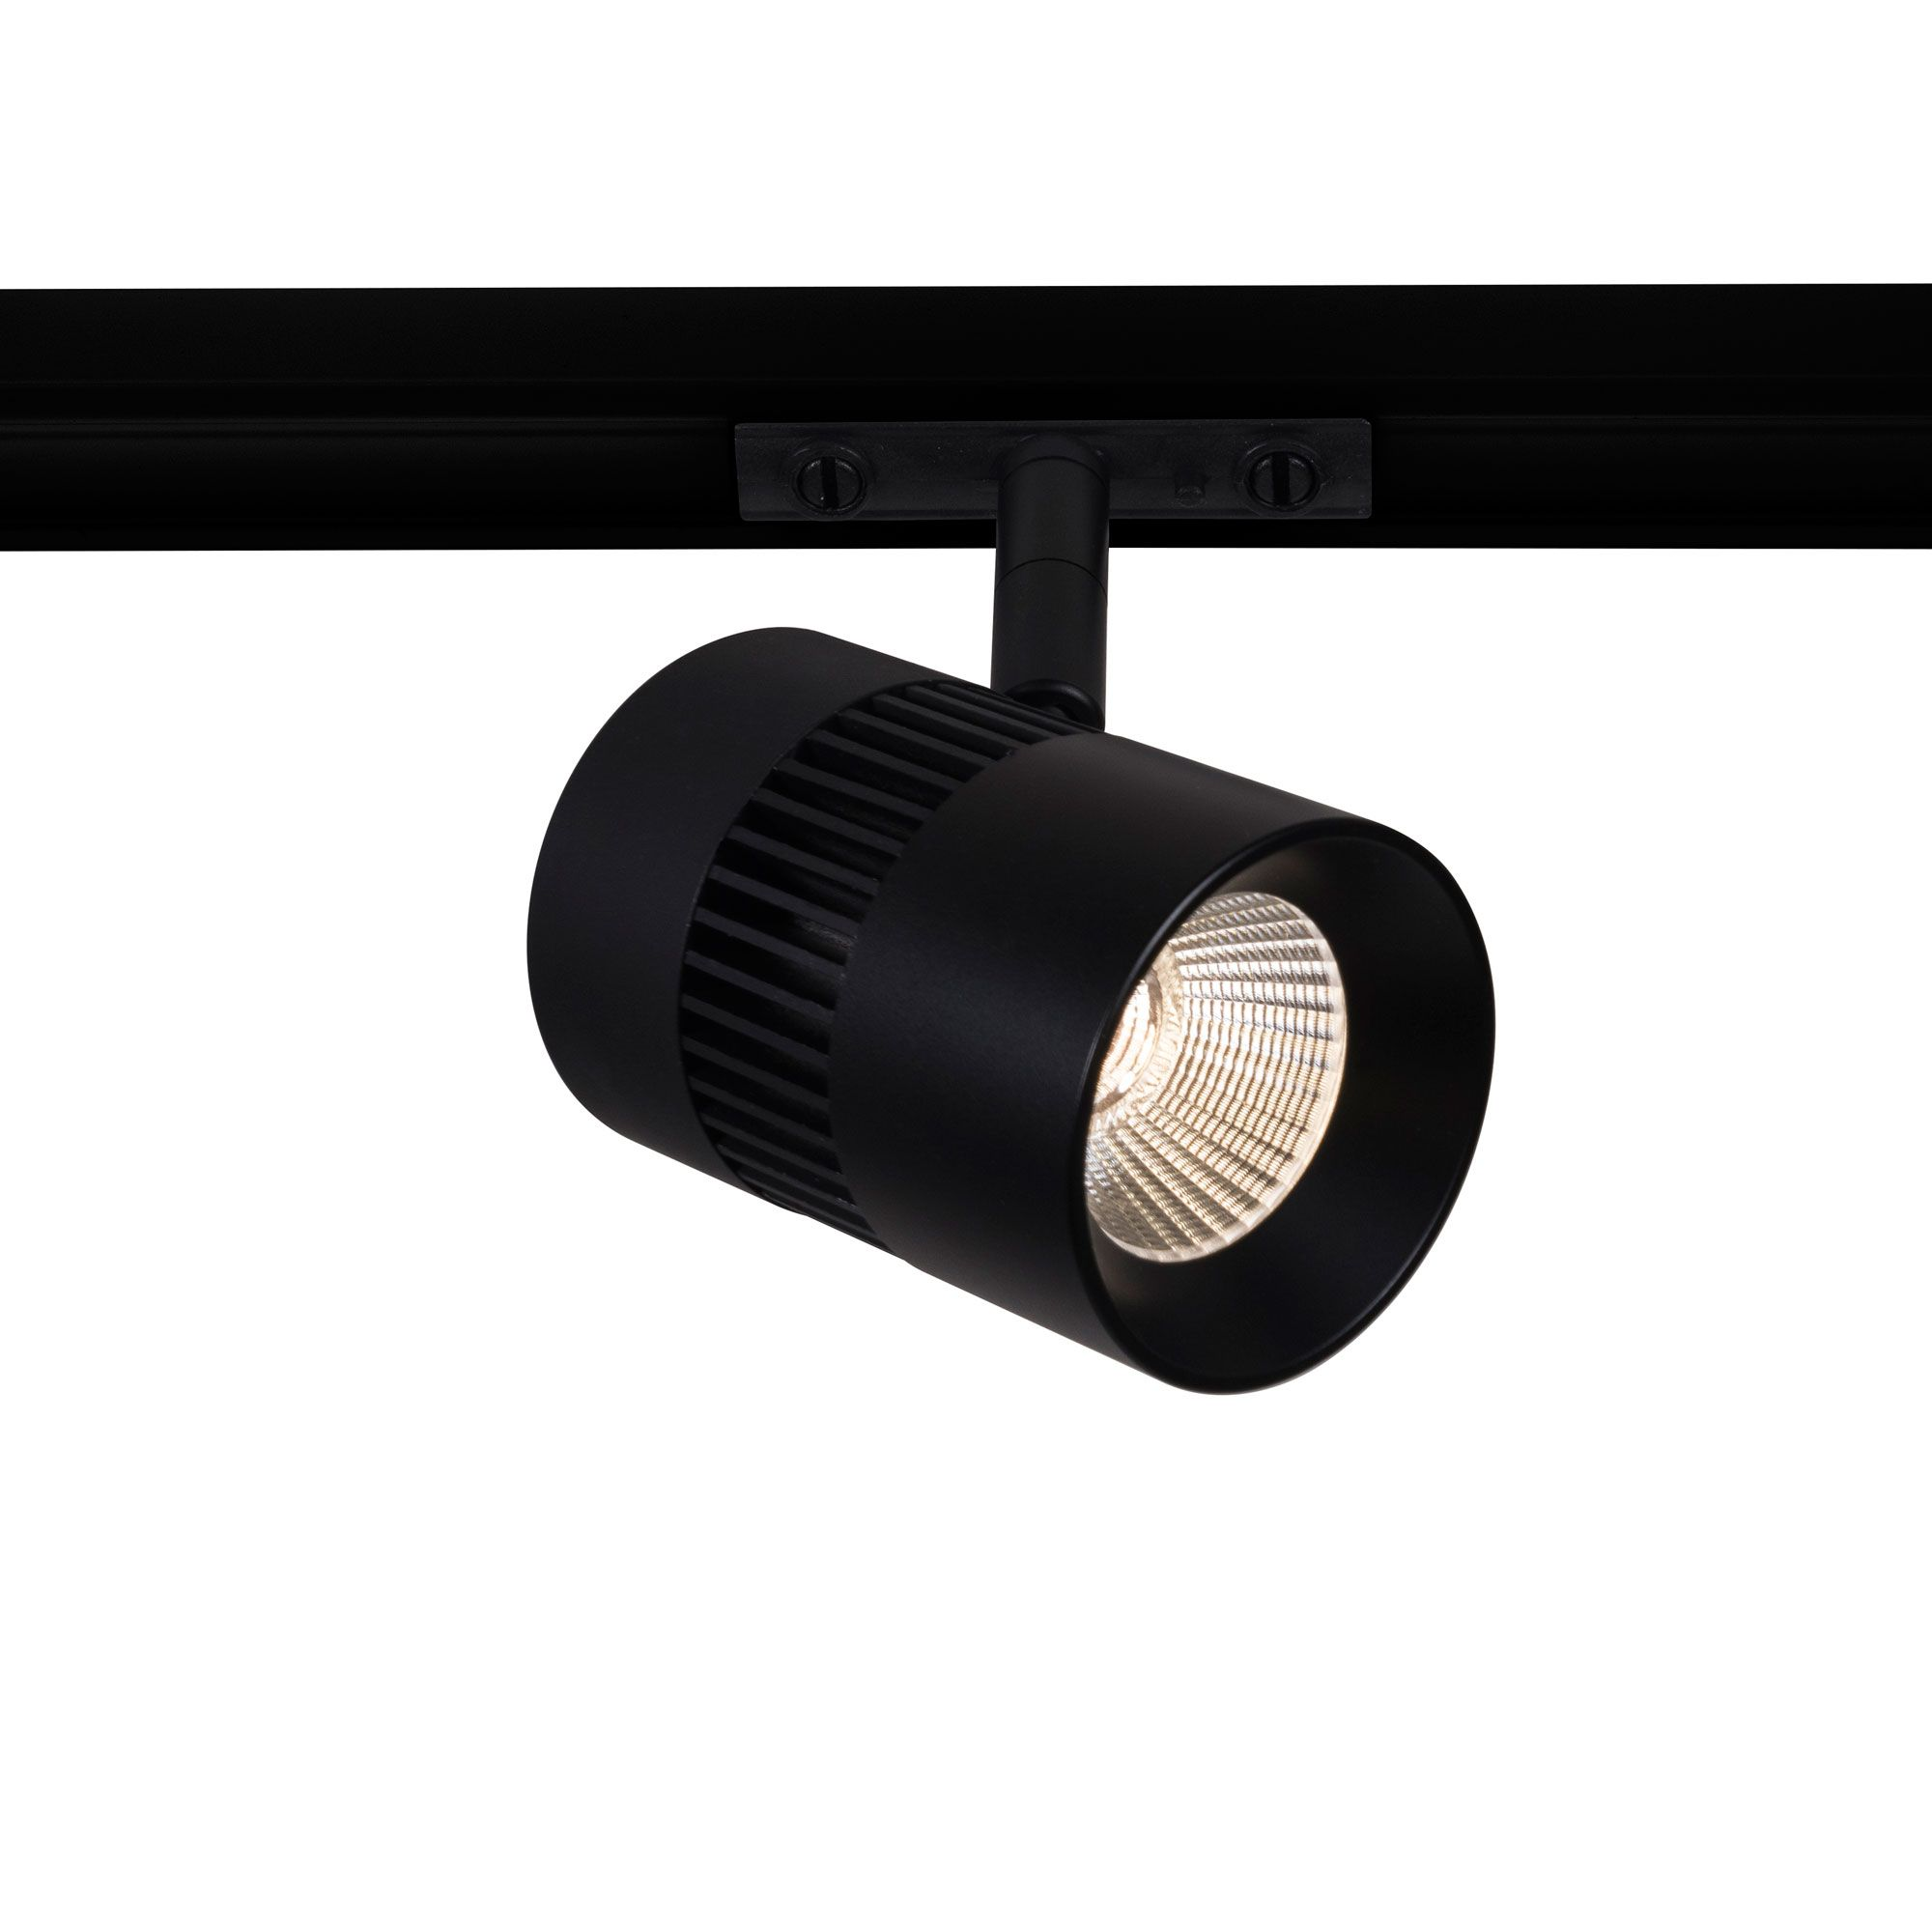 The radiant medium 24vdc led track head is made of cast aluminum available in two sizes